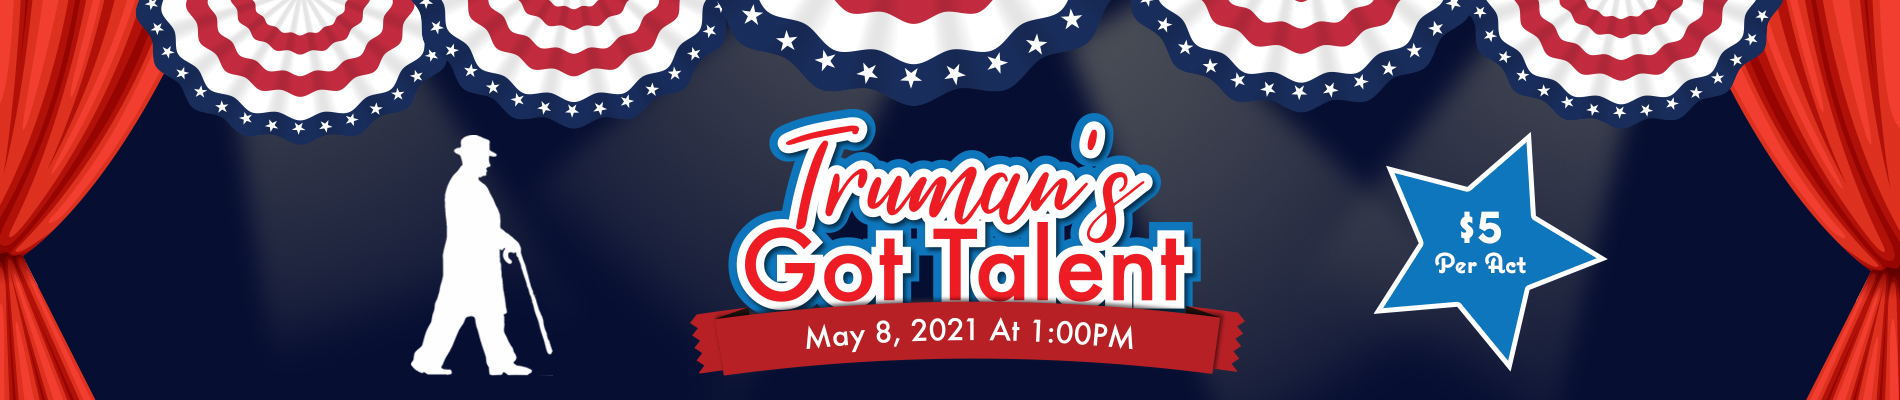 Trumans Got Talent - Talent Show During Truman Day